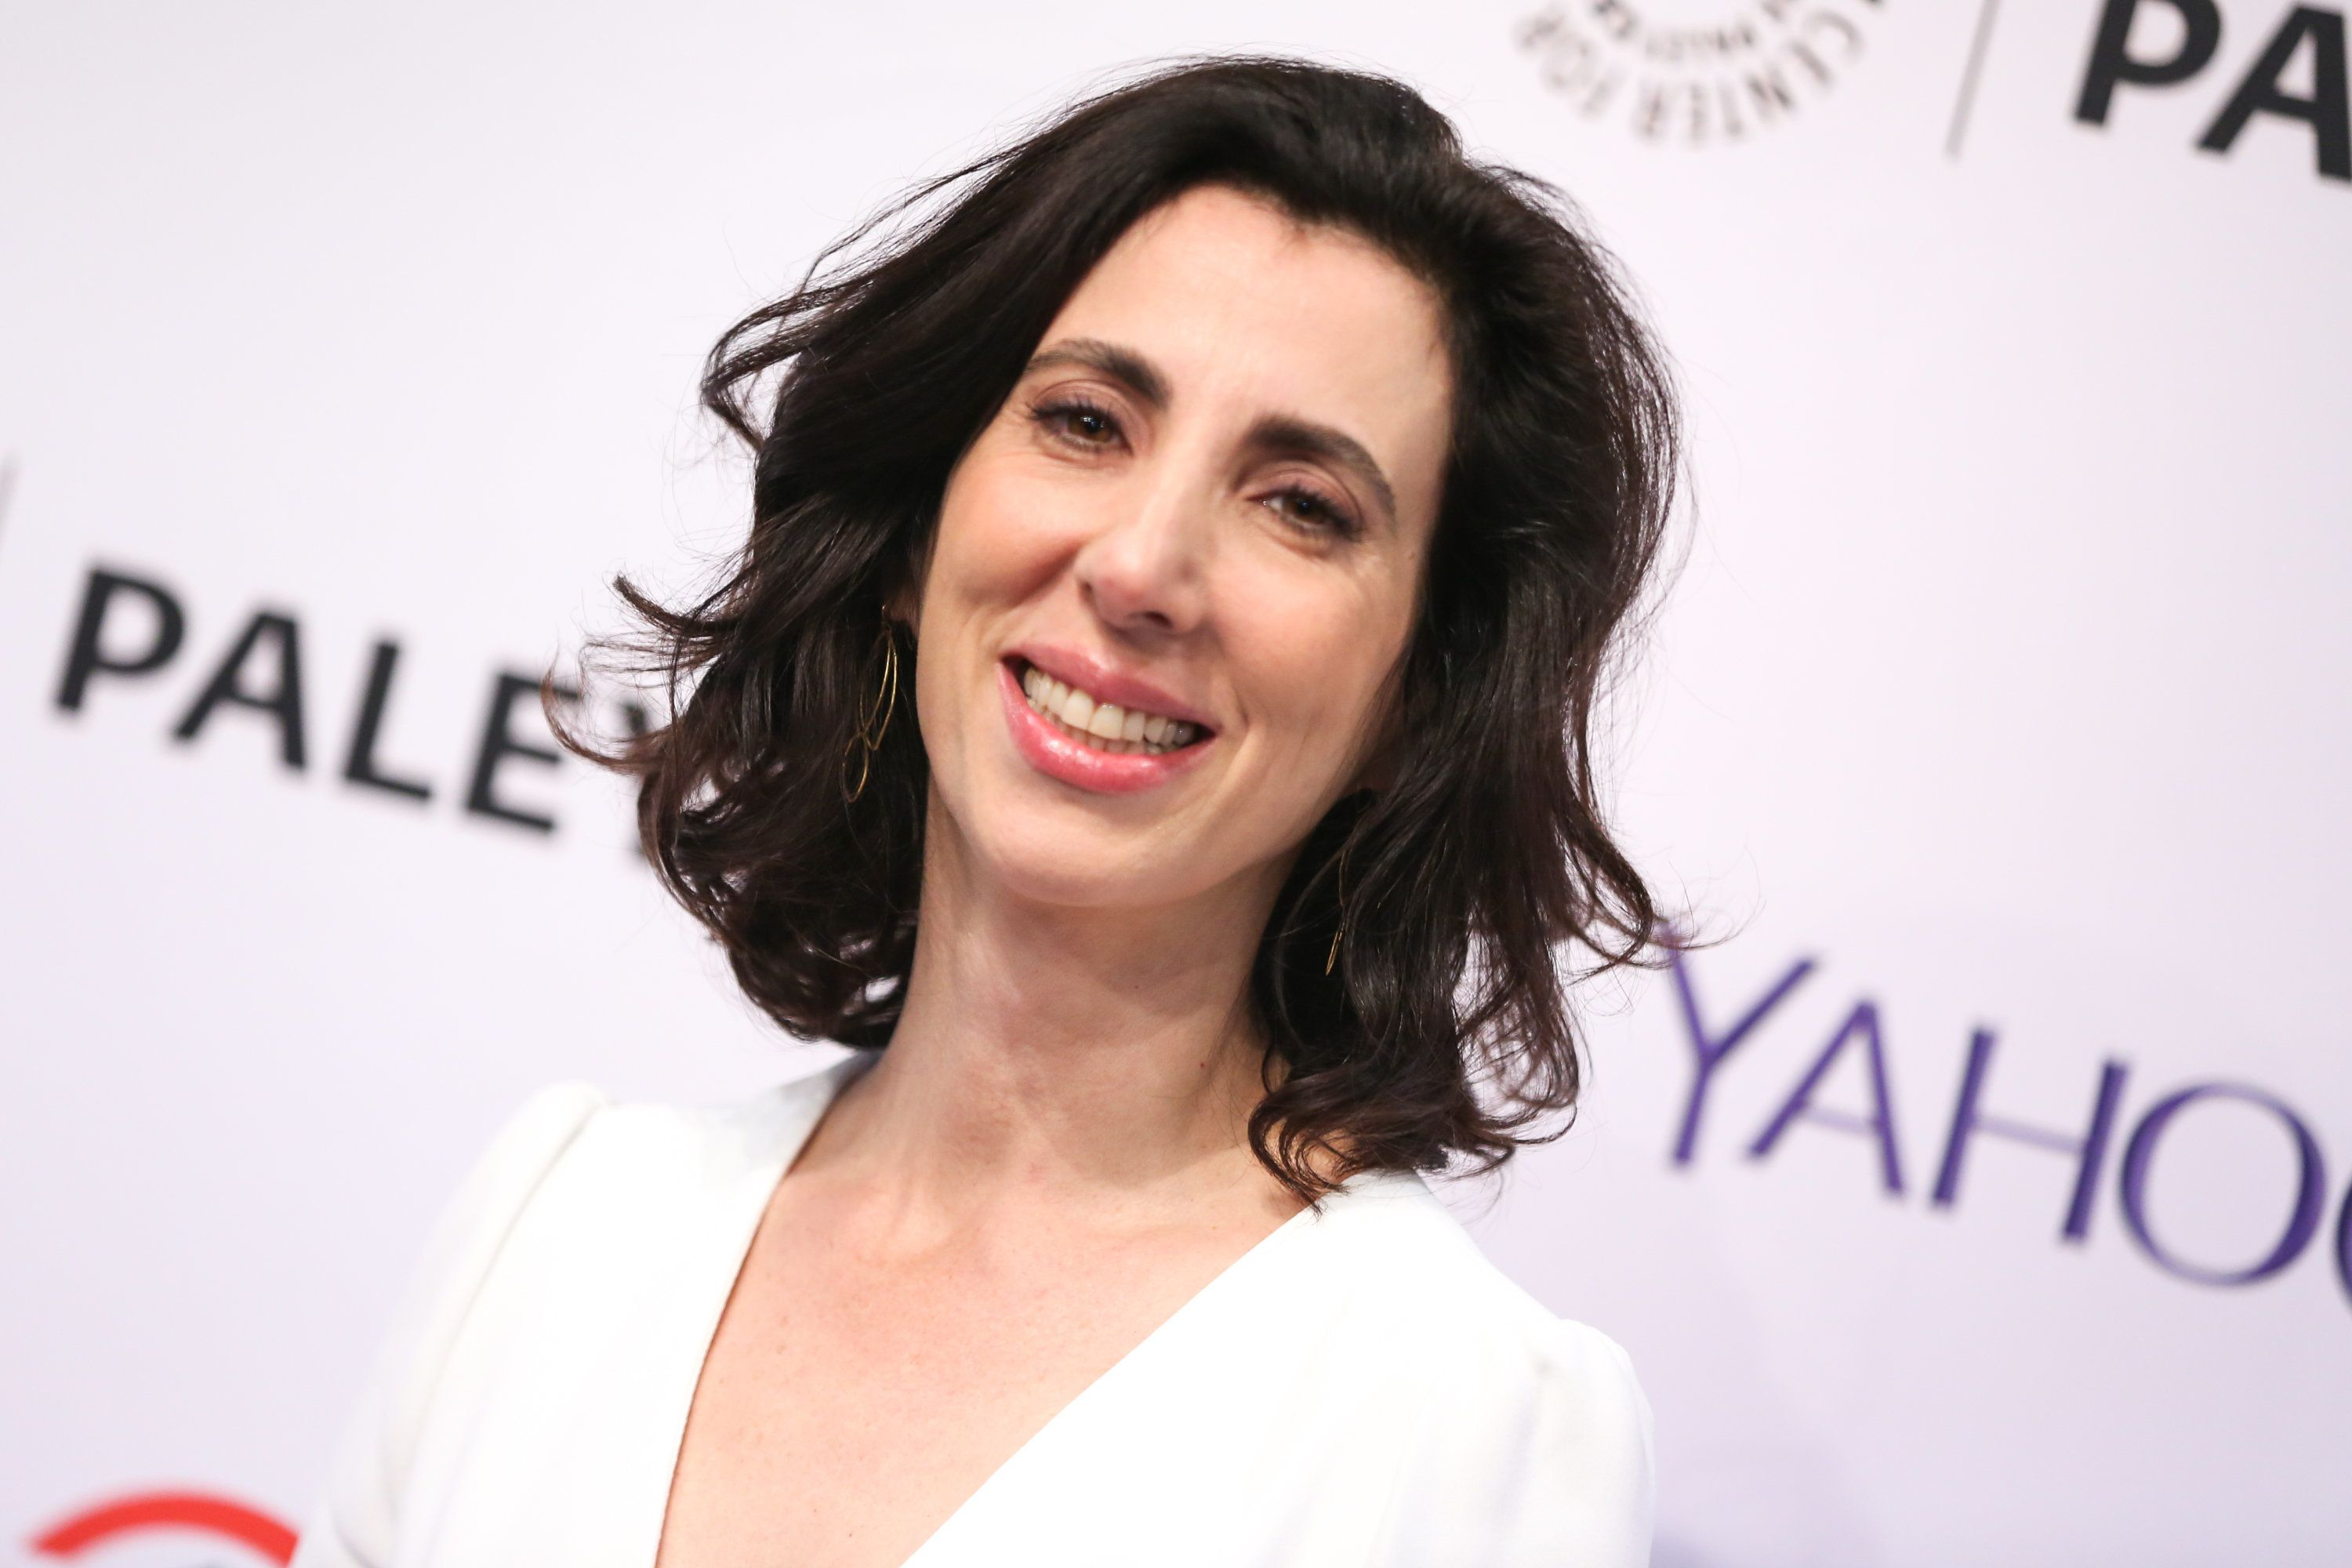 Aline Brosh McKenna arrives at the at 2015 PaleyFest Fall TV Previews at The Paley Center for Media on Monday, Sept. 14, 2015, in Beverly Hills, Calif. (Photo by Rich Fury/Invision/AP)